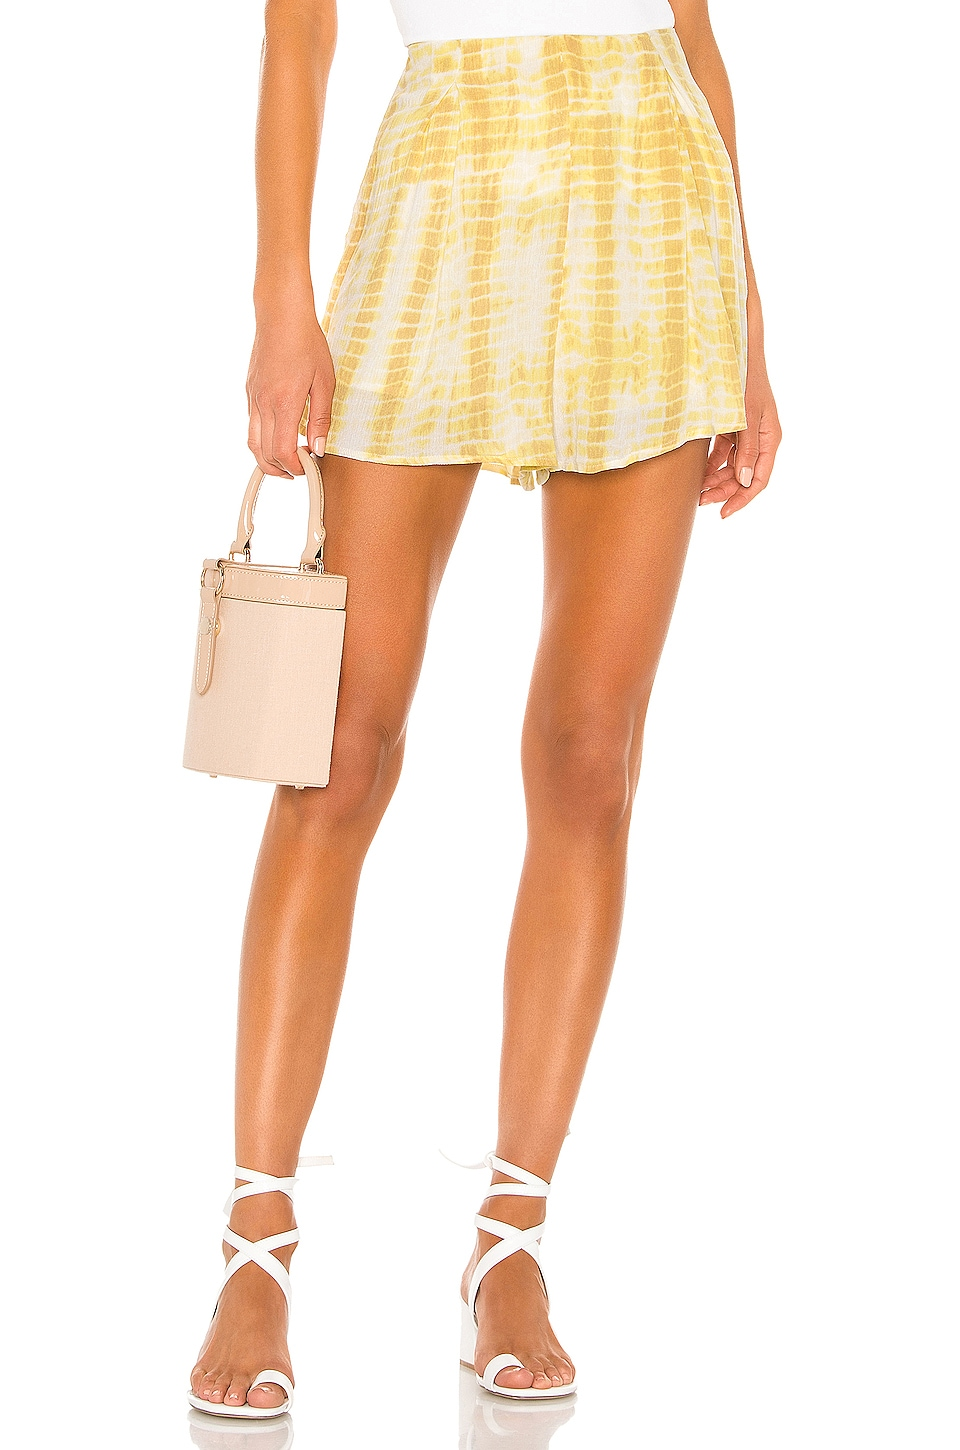 MAJORELLE Hunter Shorts in Yellow Tie Dye